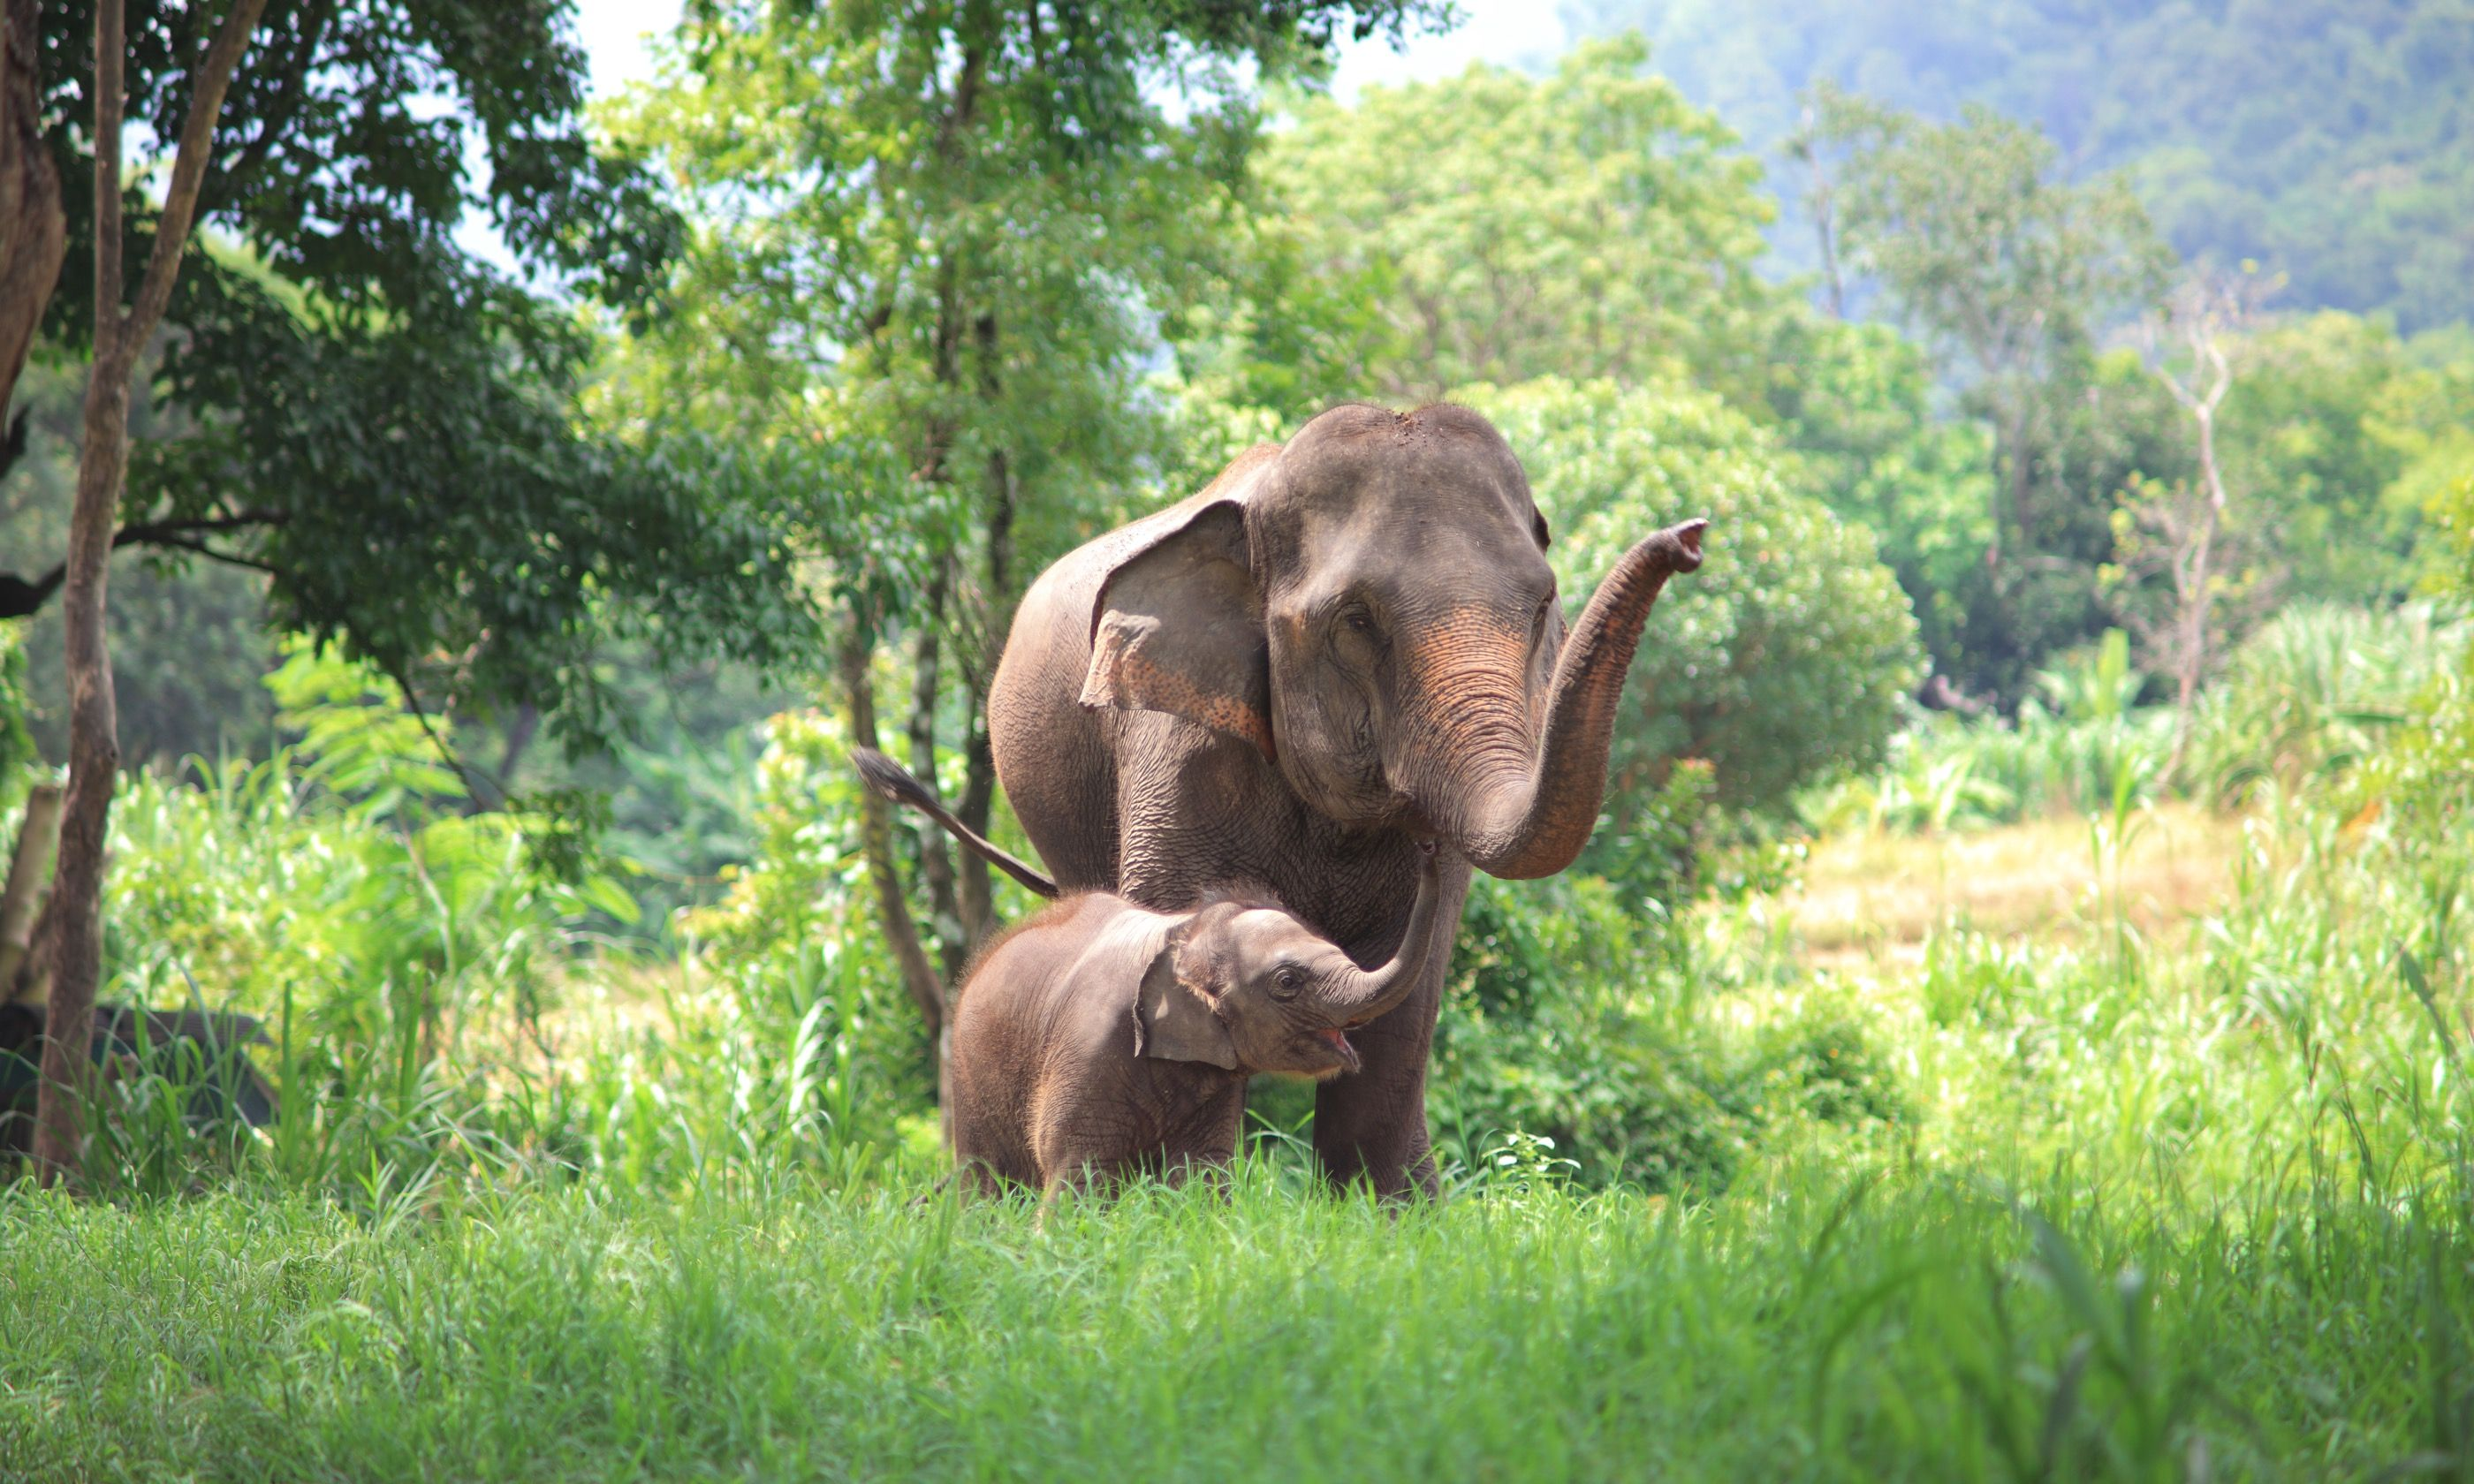 Mother and baby elephant in Thai forest (Shutterstock.com)